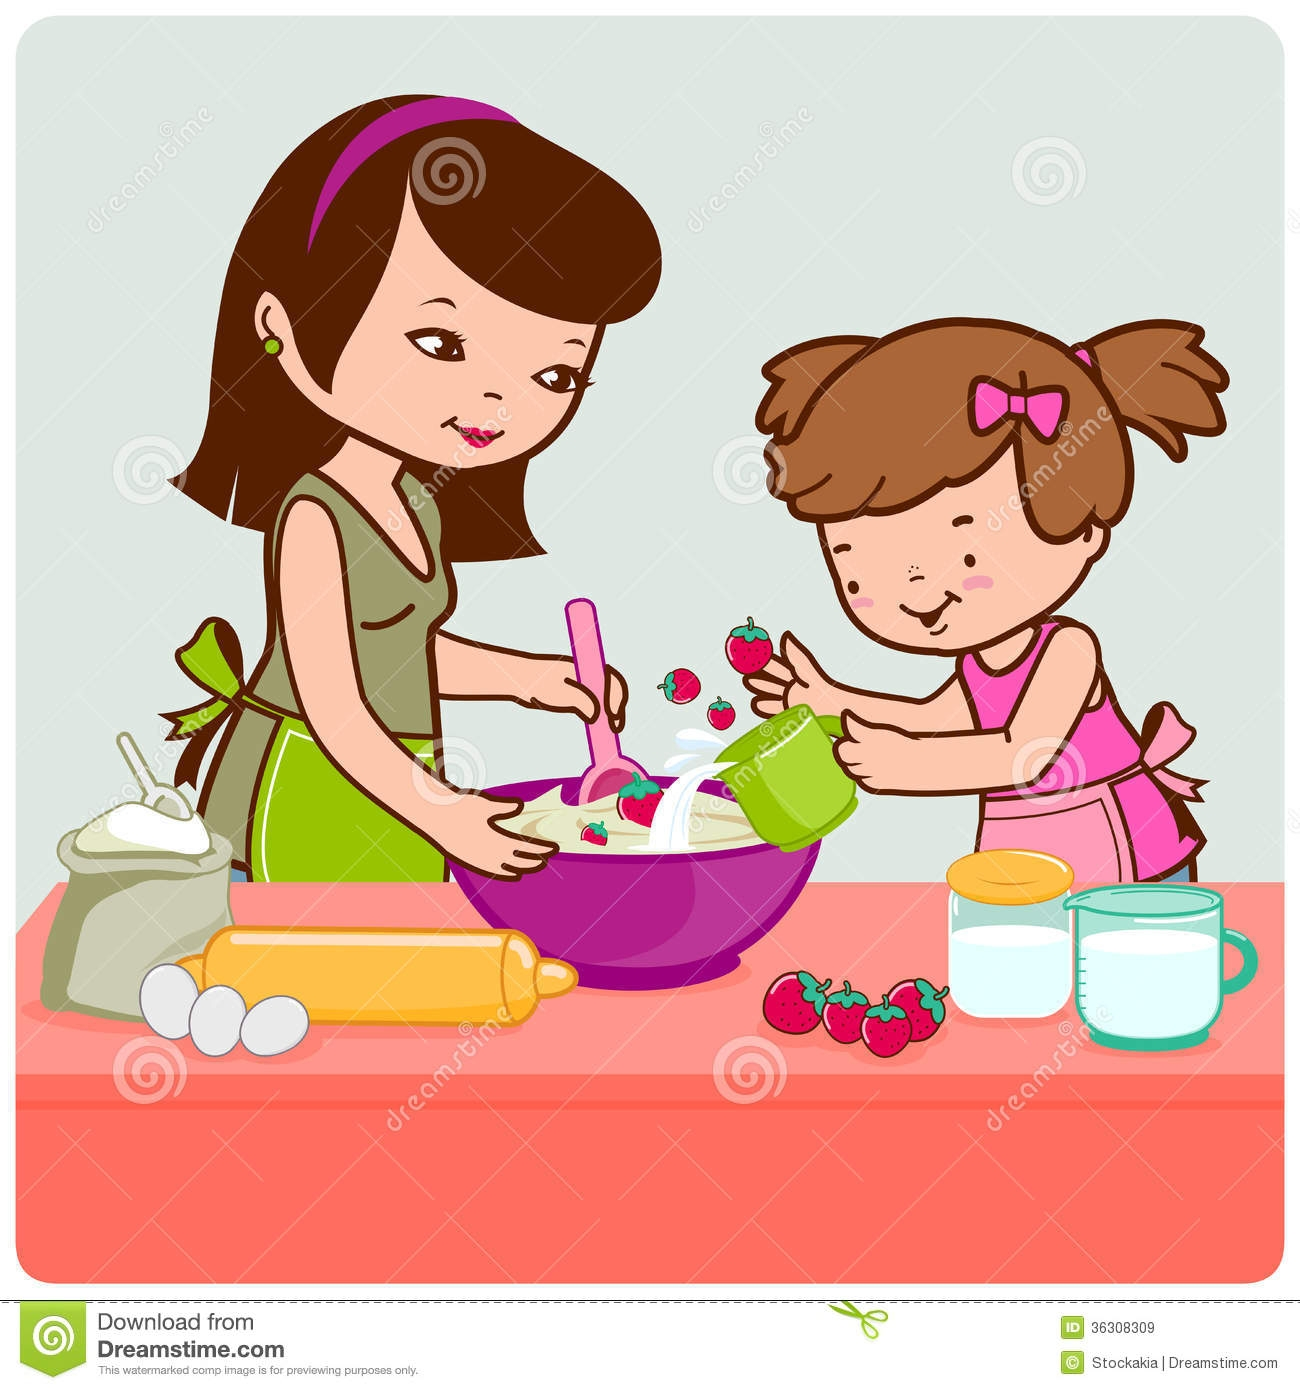 Woman Is Cooking clipart. Free download transparent .PNG   Creazilla